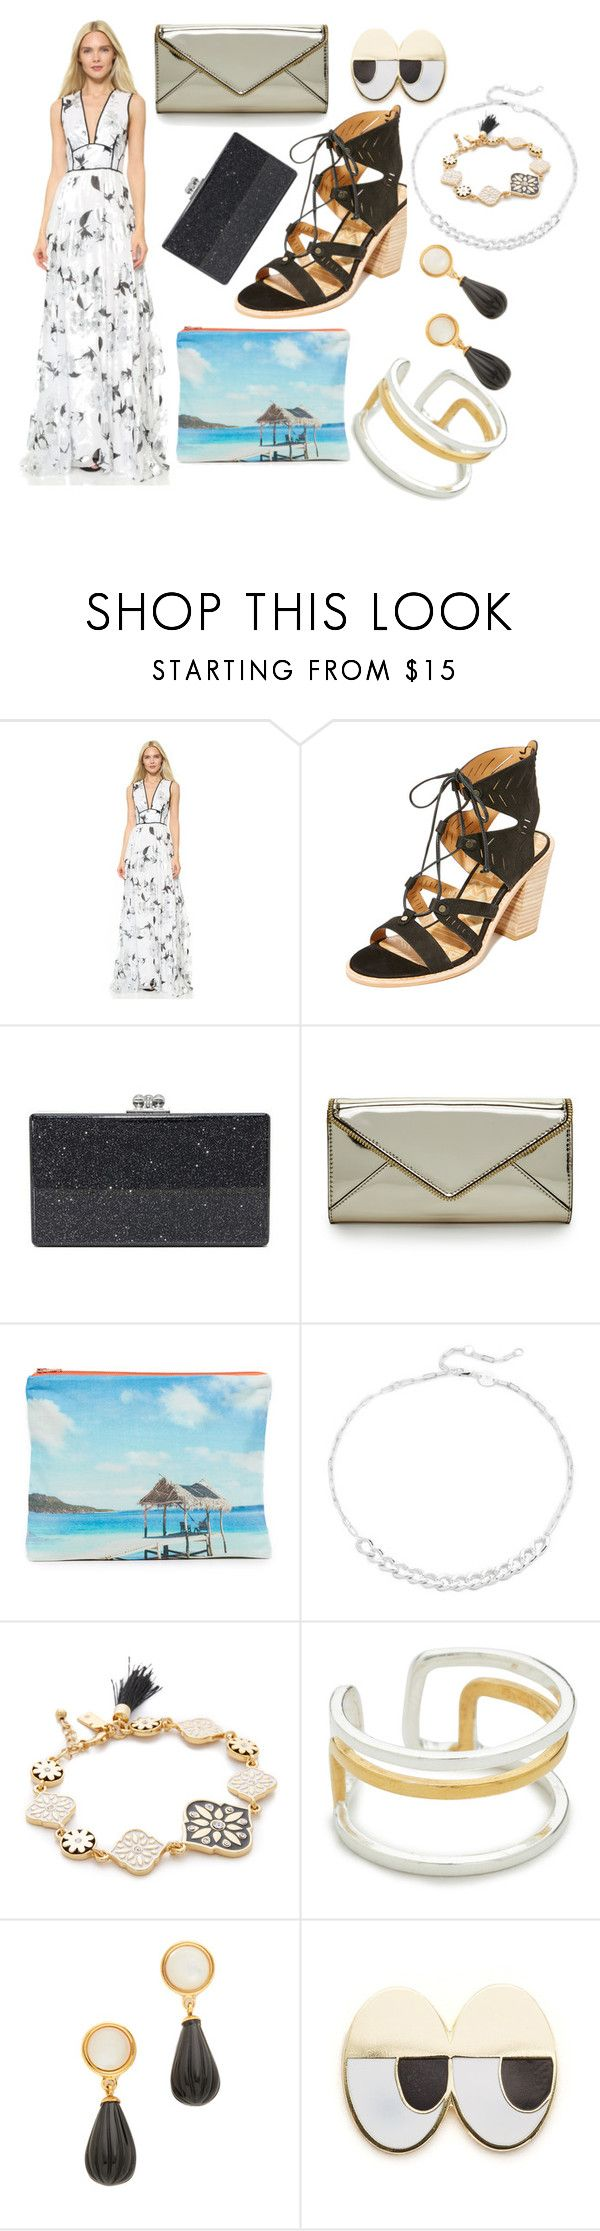 """""""Cool thing"""" by racheal-taylor ❤ liked on Polyvore featuring Lela Rose, Dolce Vita, Edie Parker, Rebecca Minkoff, Samudra, Jennifer Zeuner, Kate Spade, Maya Magal, Lizzie Fortunato and Georgia Perry"""